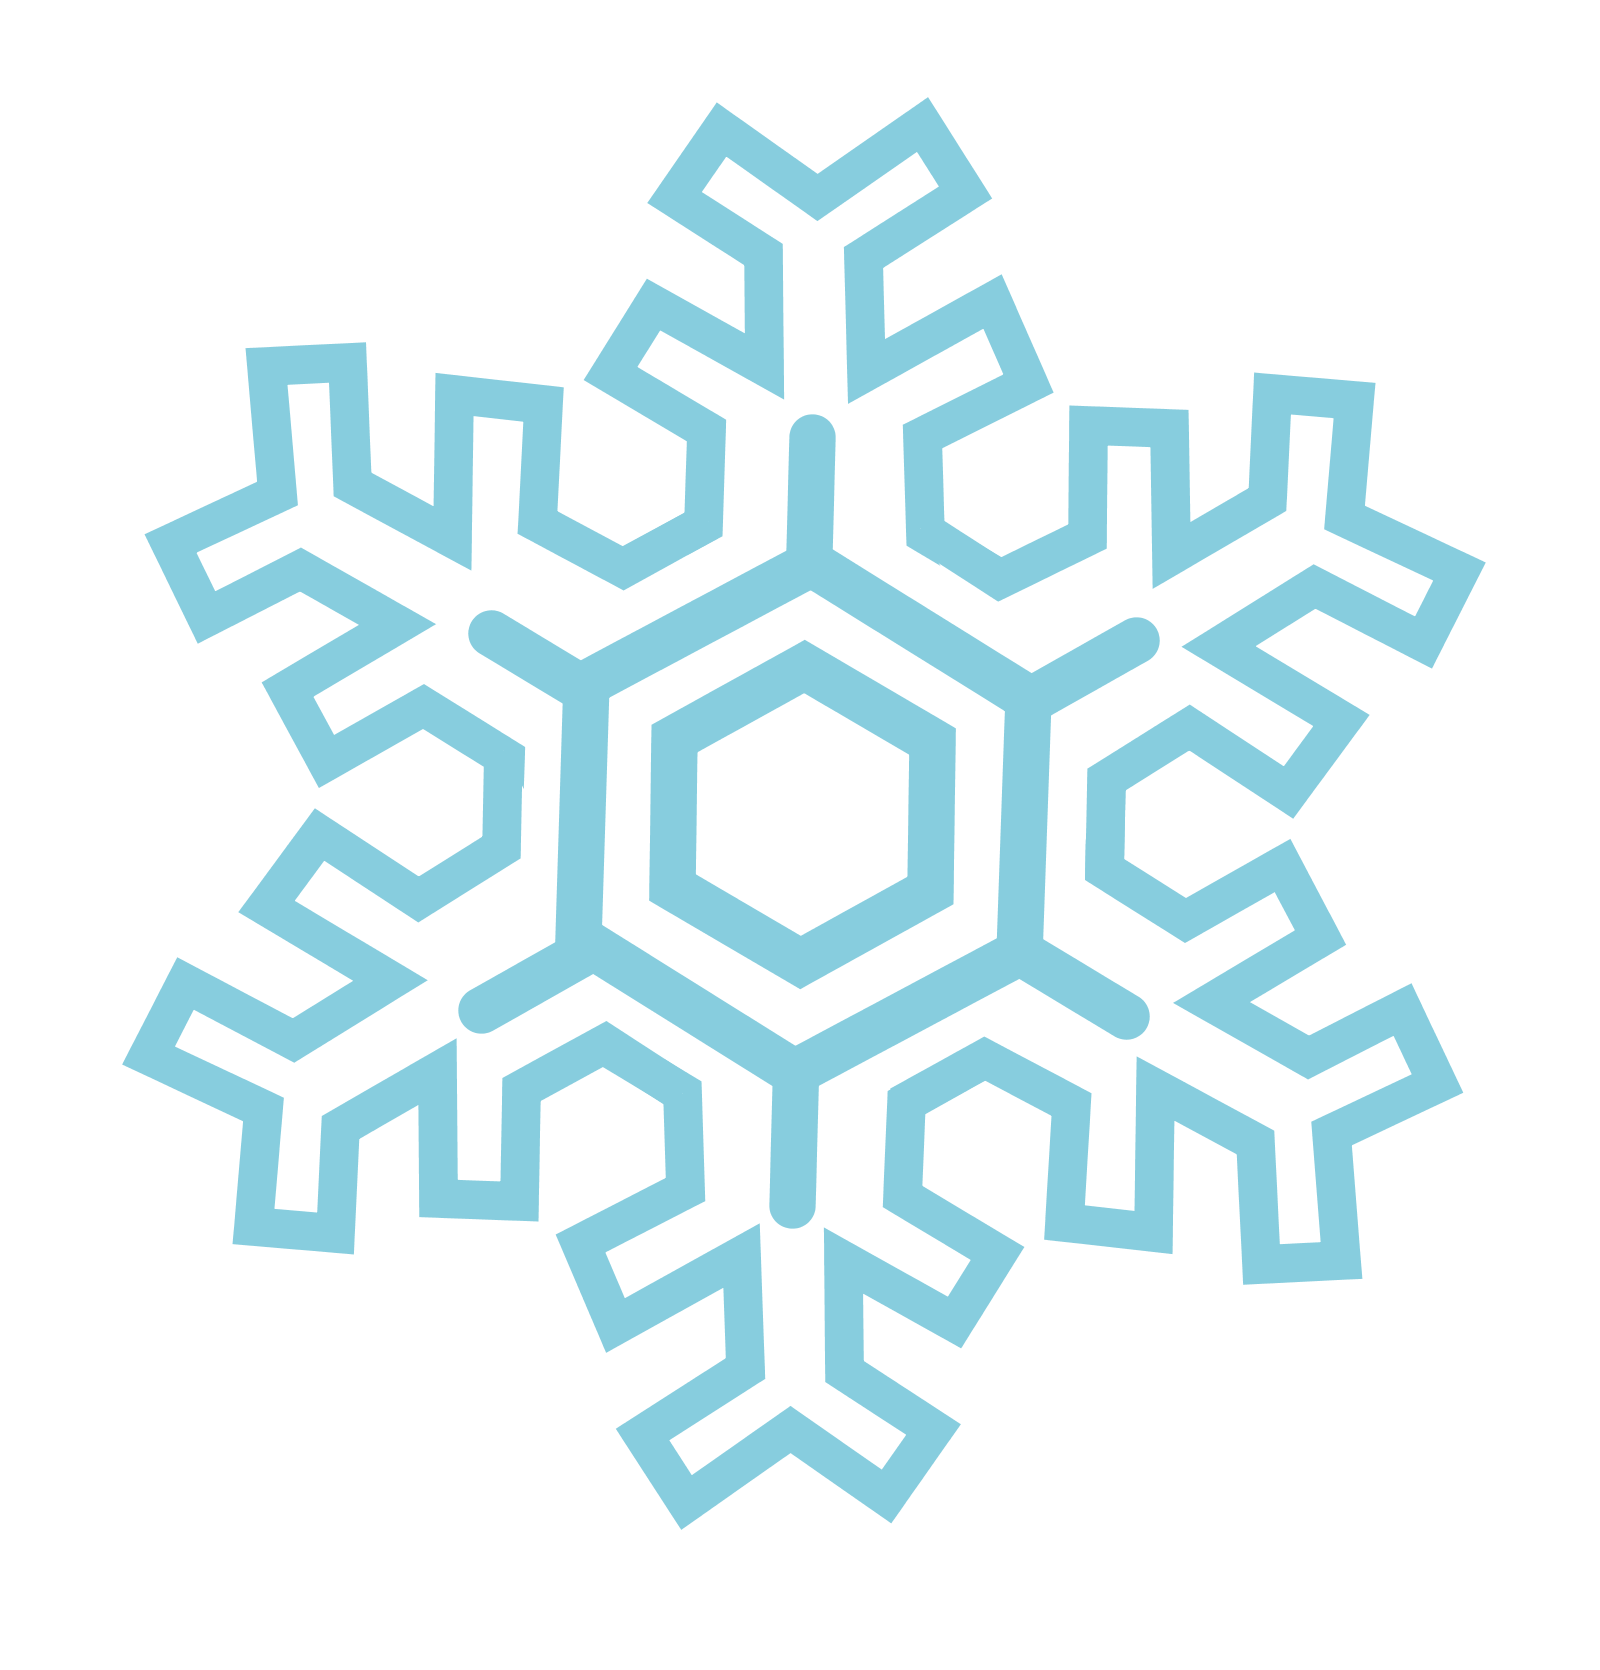 Snowflakes Transparent Background SVG Clip arts